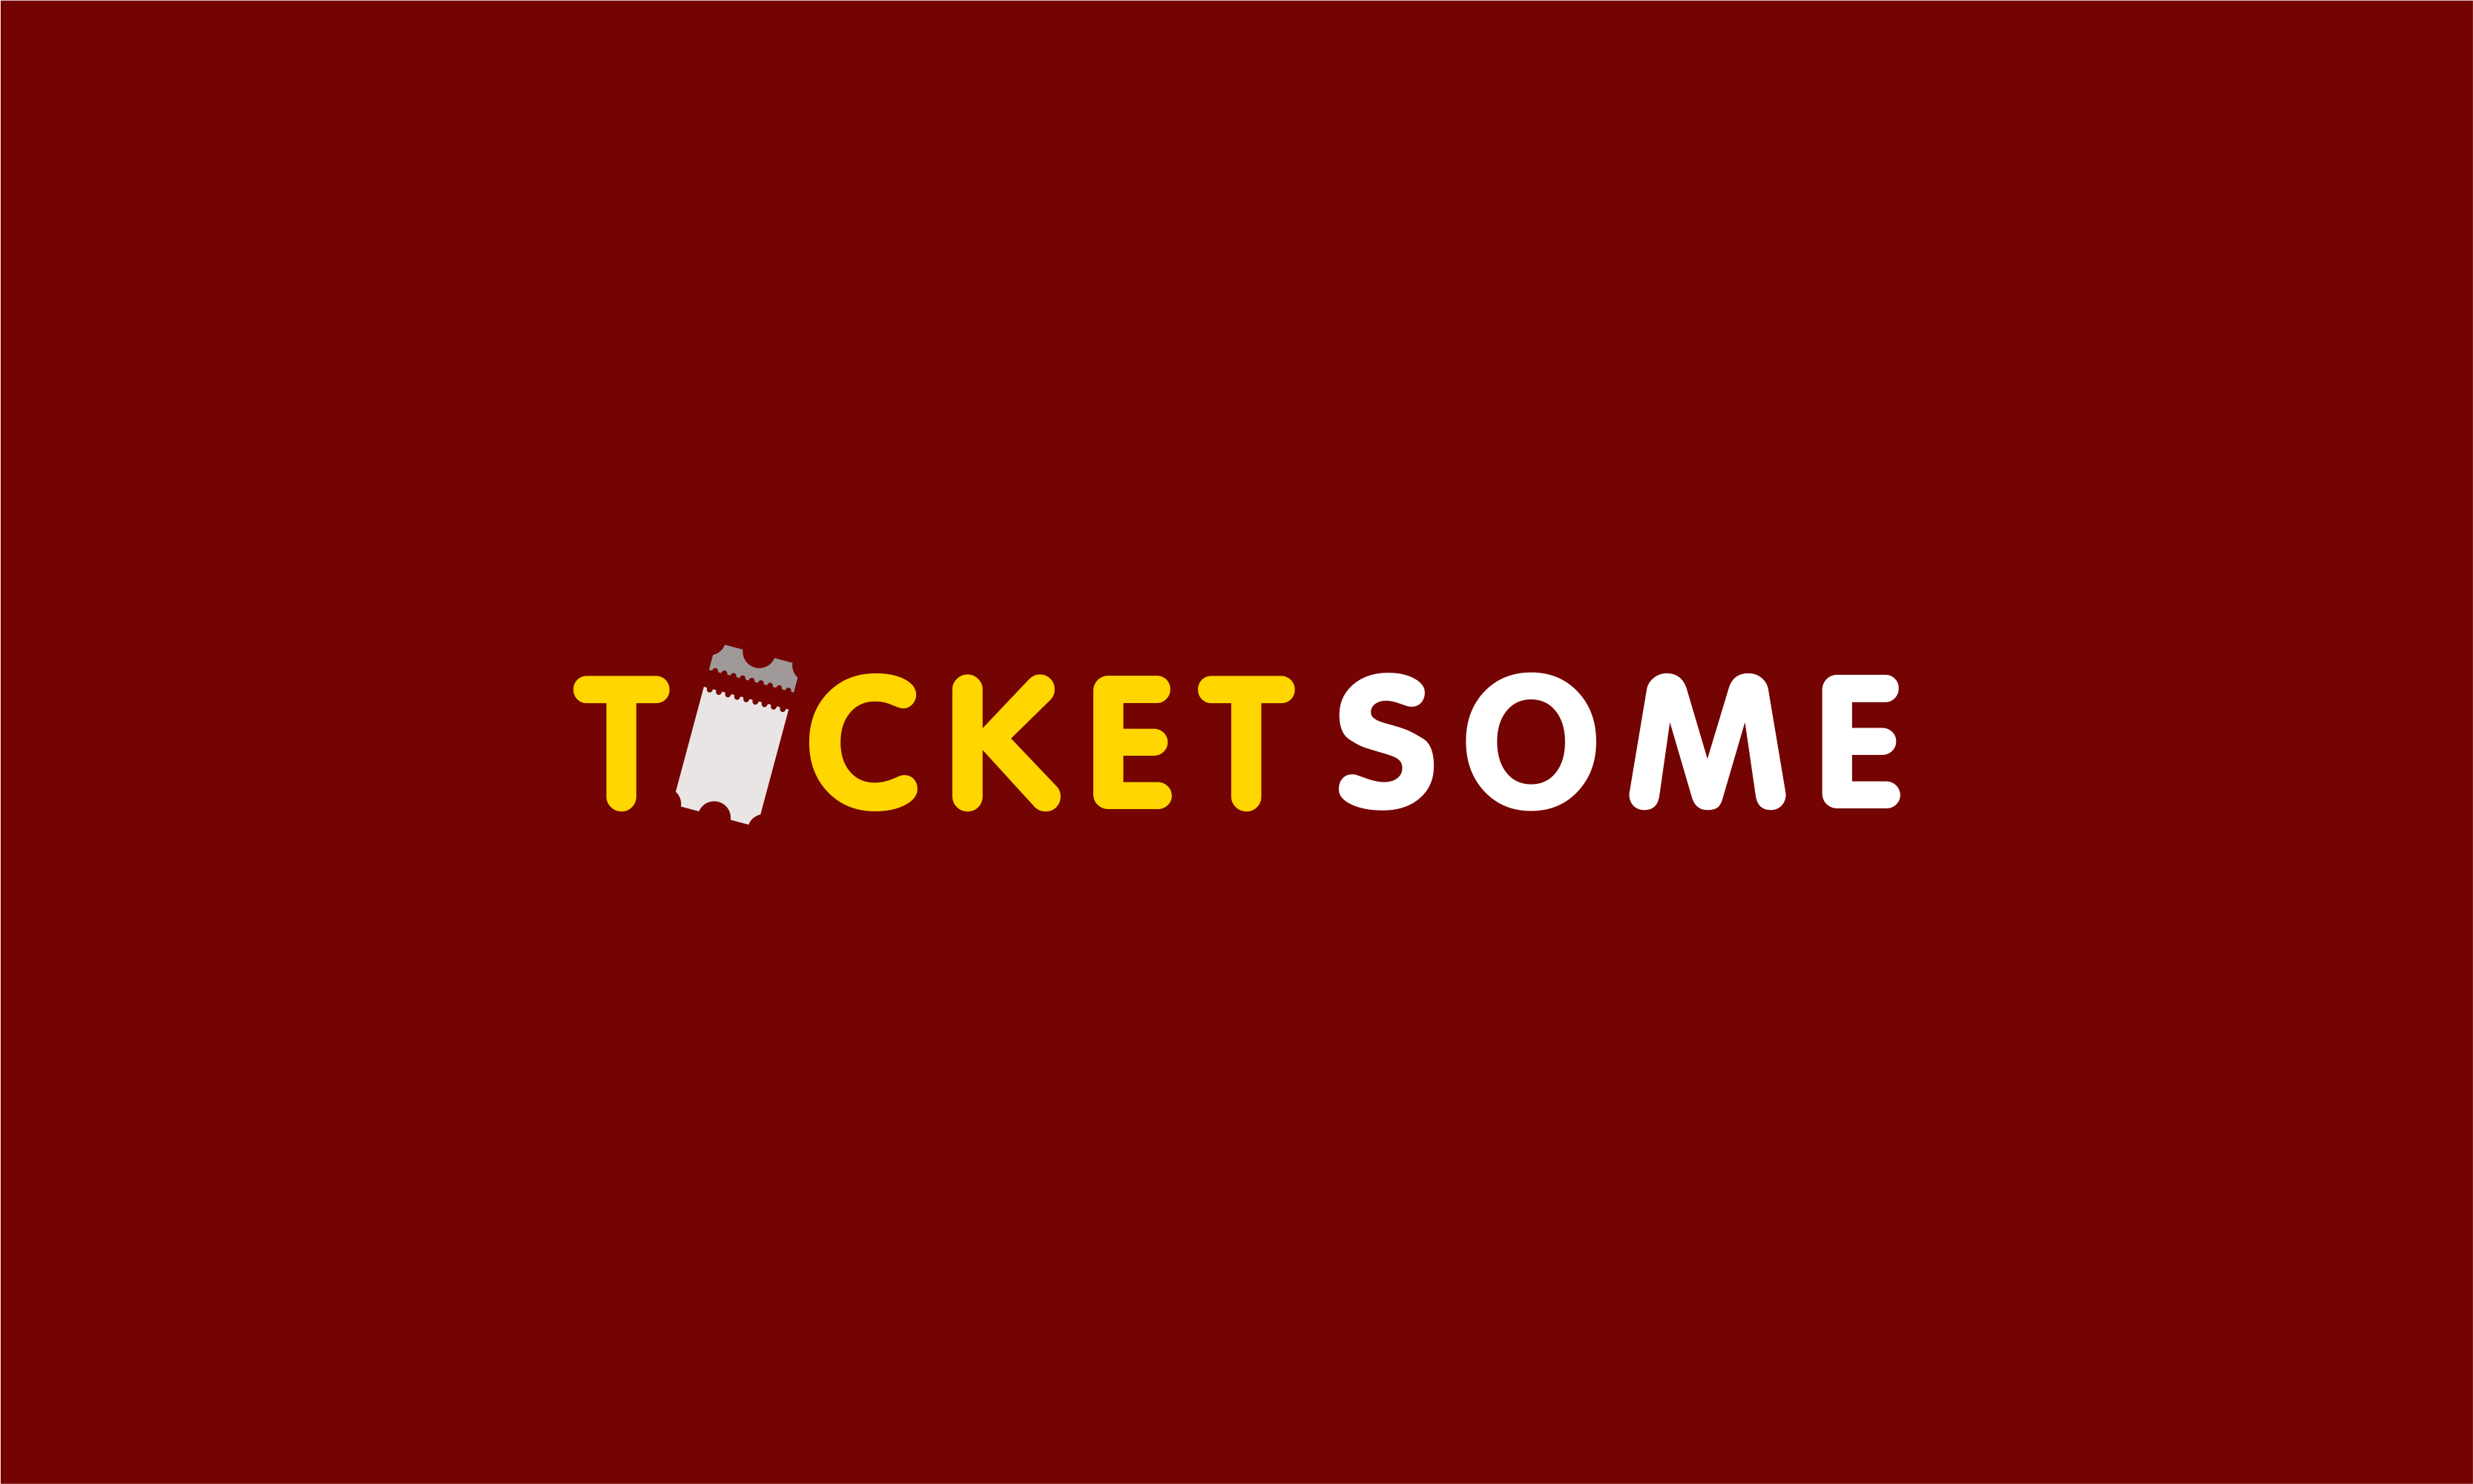 Ticketsome - Events business name for sale